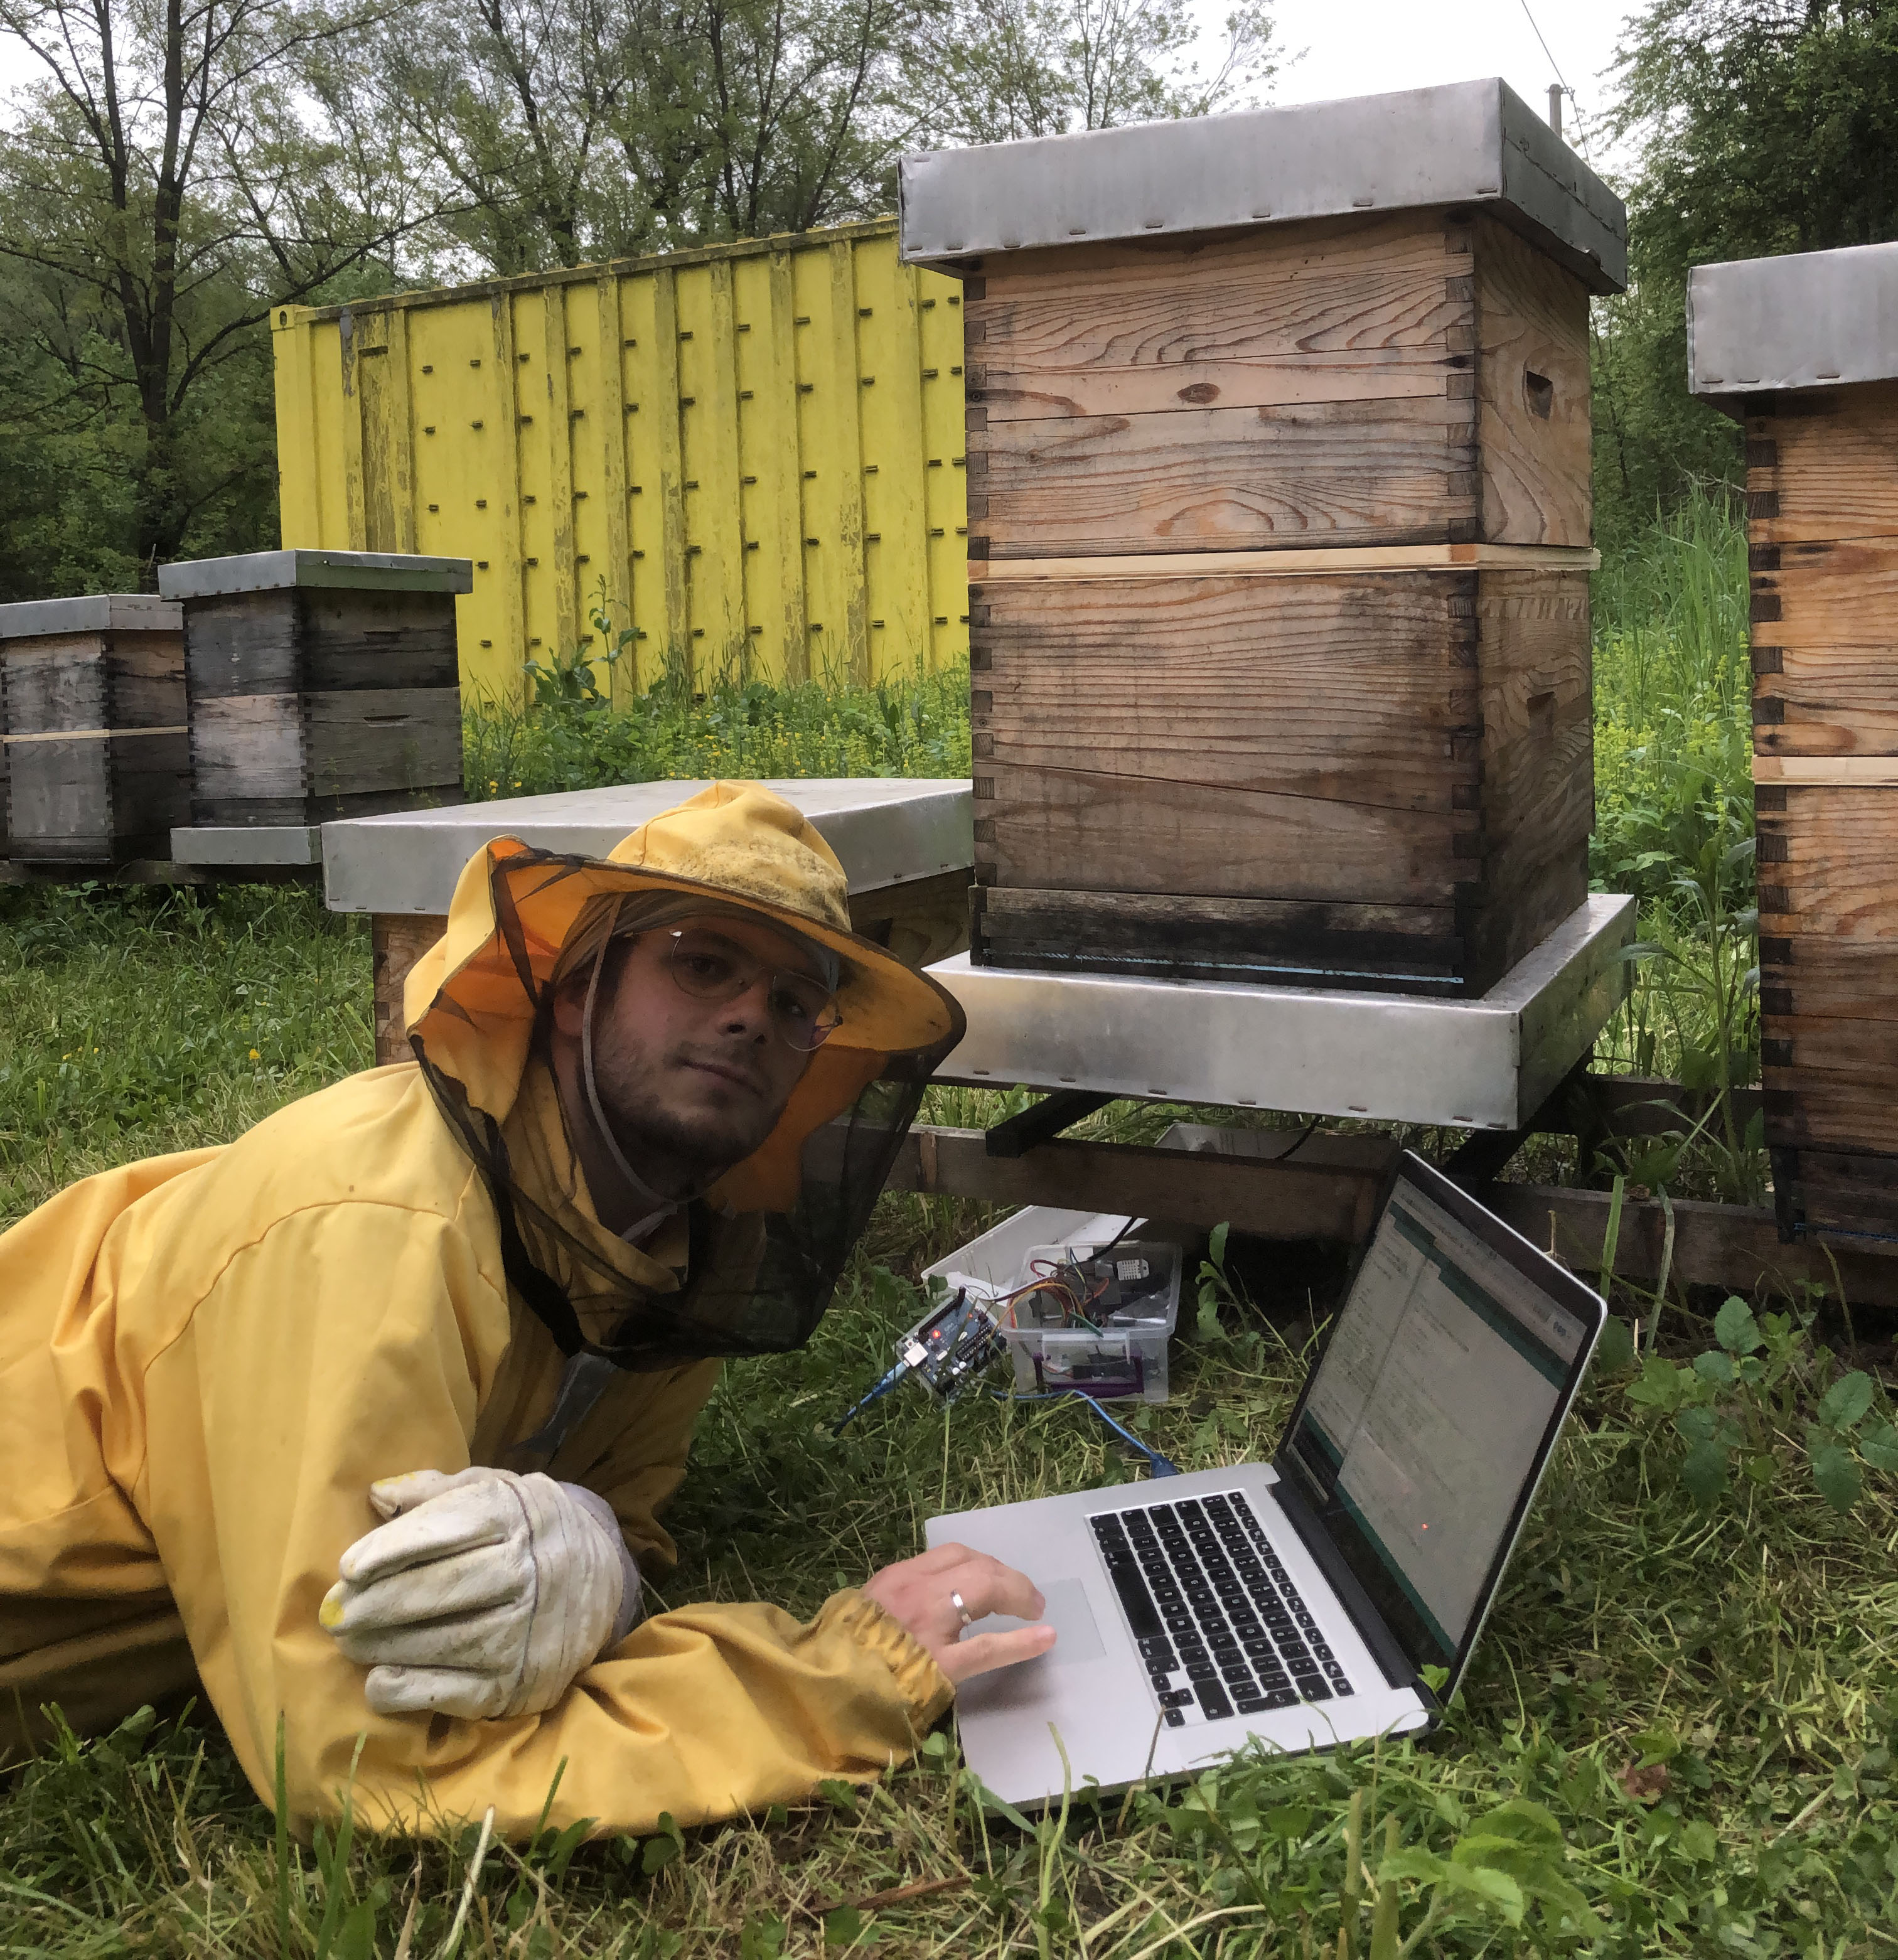 Bosnian Computer Programmer is Abuzz about the Science of Beekeeping | American Association for the Advancement of Science